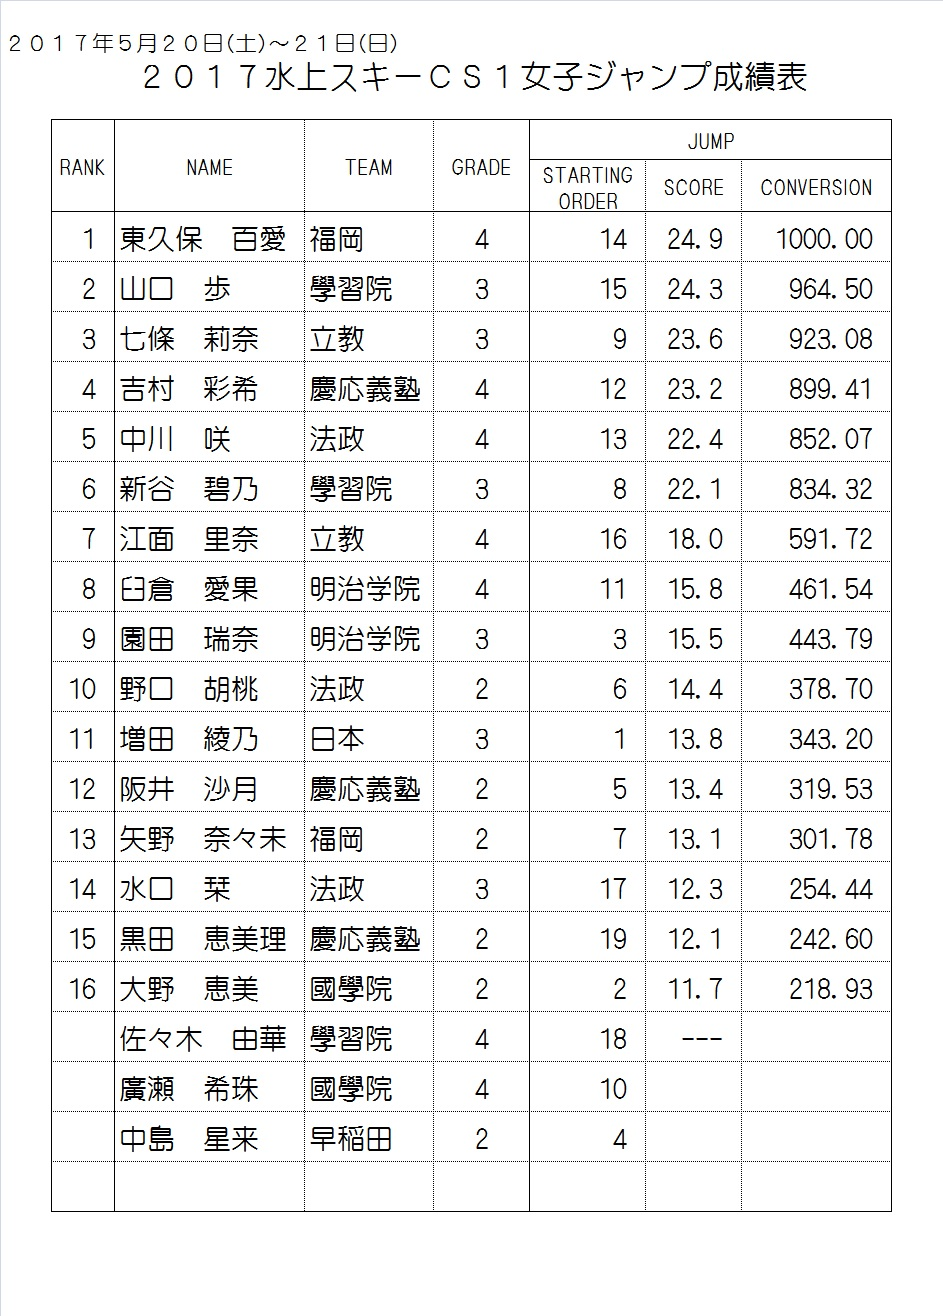 2017CS1 Women's Result Jump